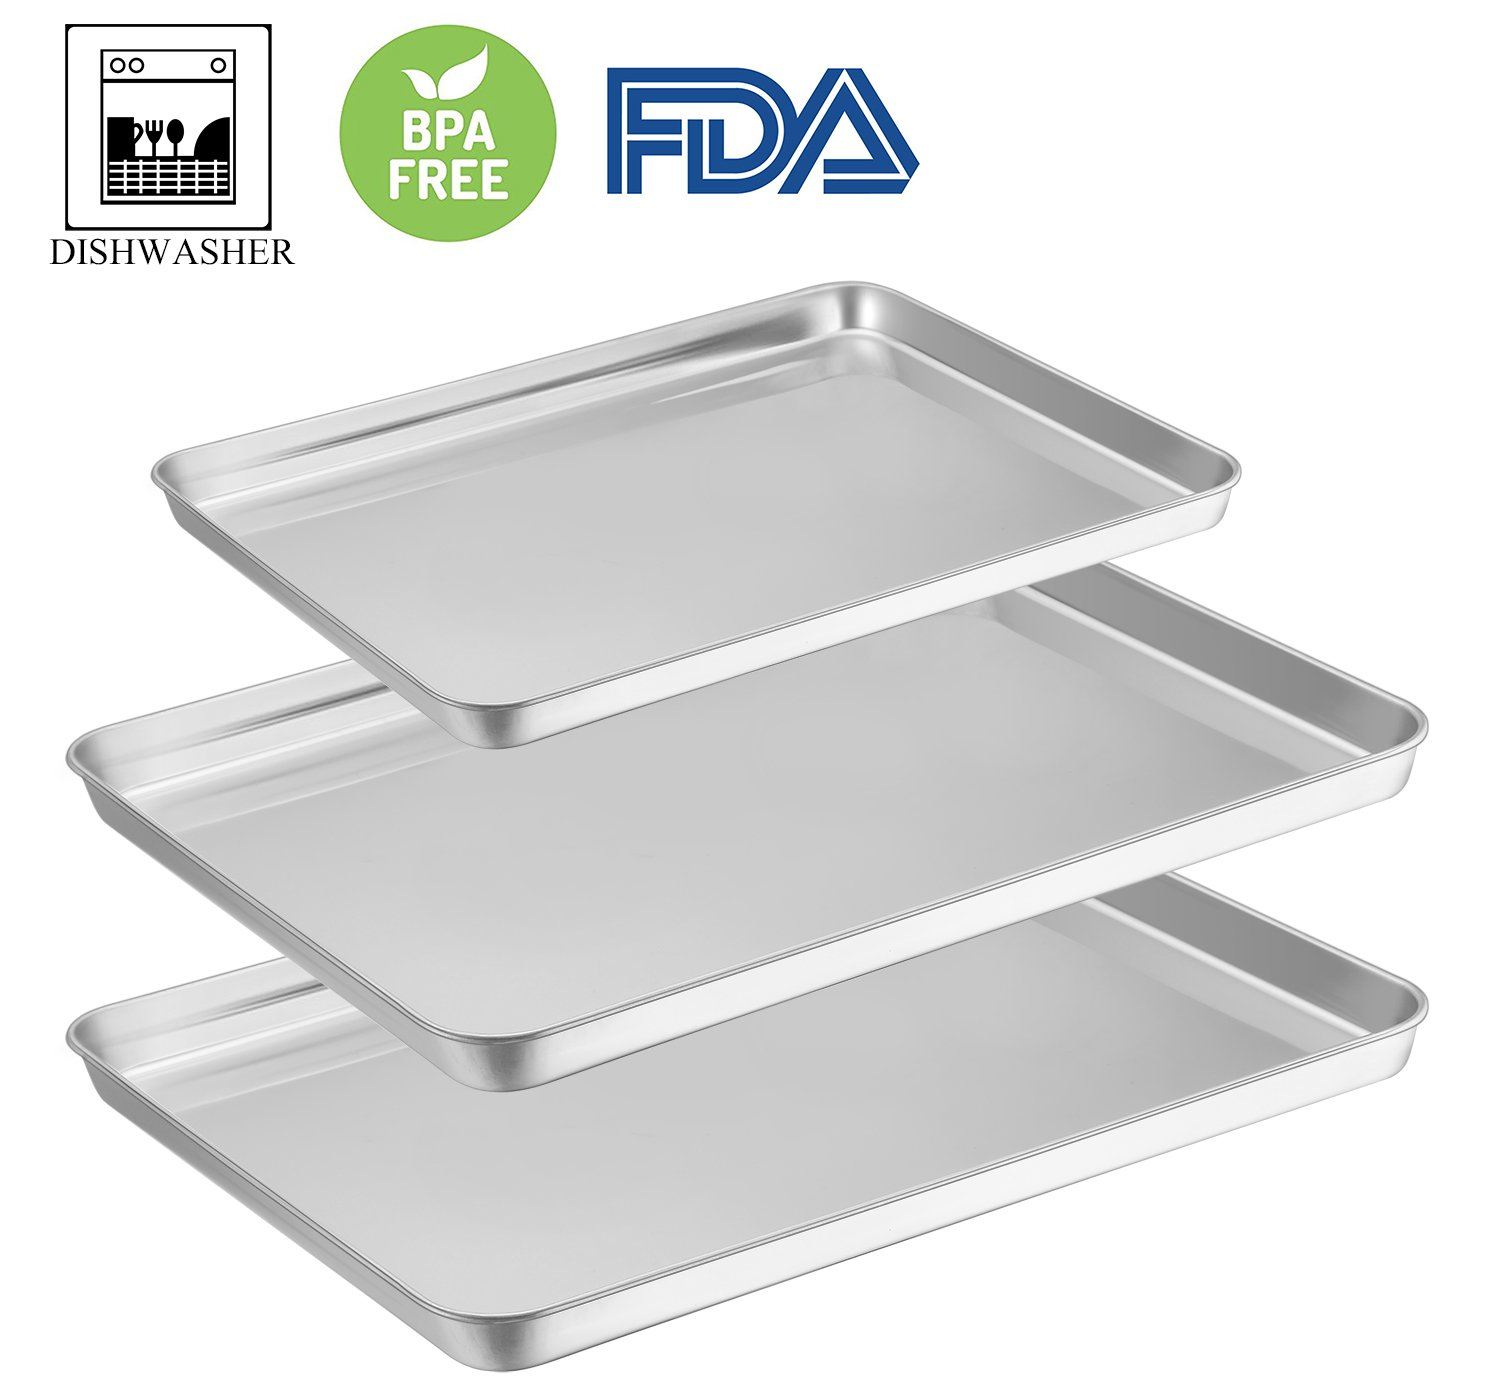 Baking Sheet Pan Set of 3, E-far Stainless Steel Oven Tray Cookie Sheet, Non Toxic & Rust Free, Mirror Polish & Easy Clean, Dishwasher Safe by E-far